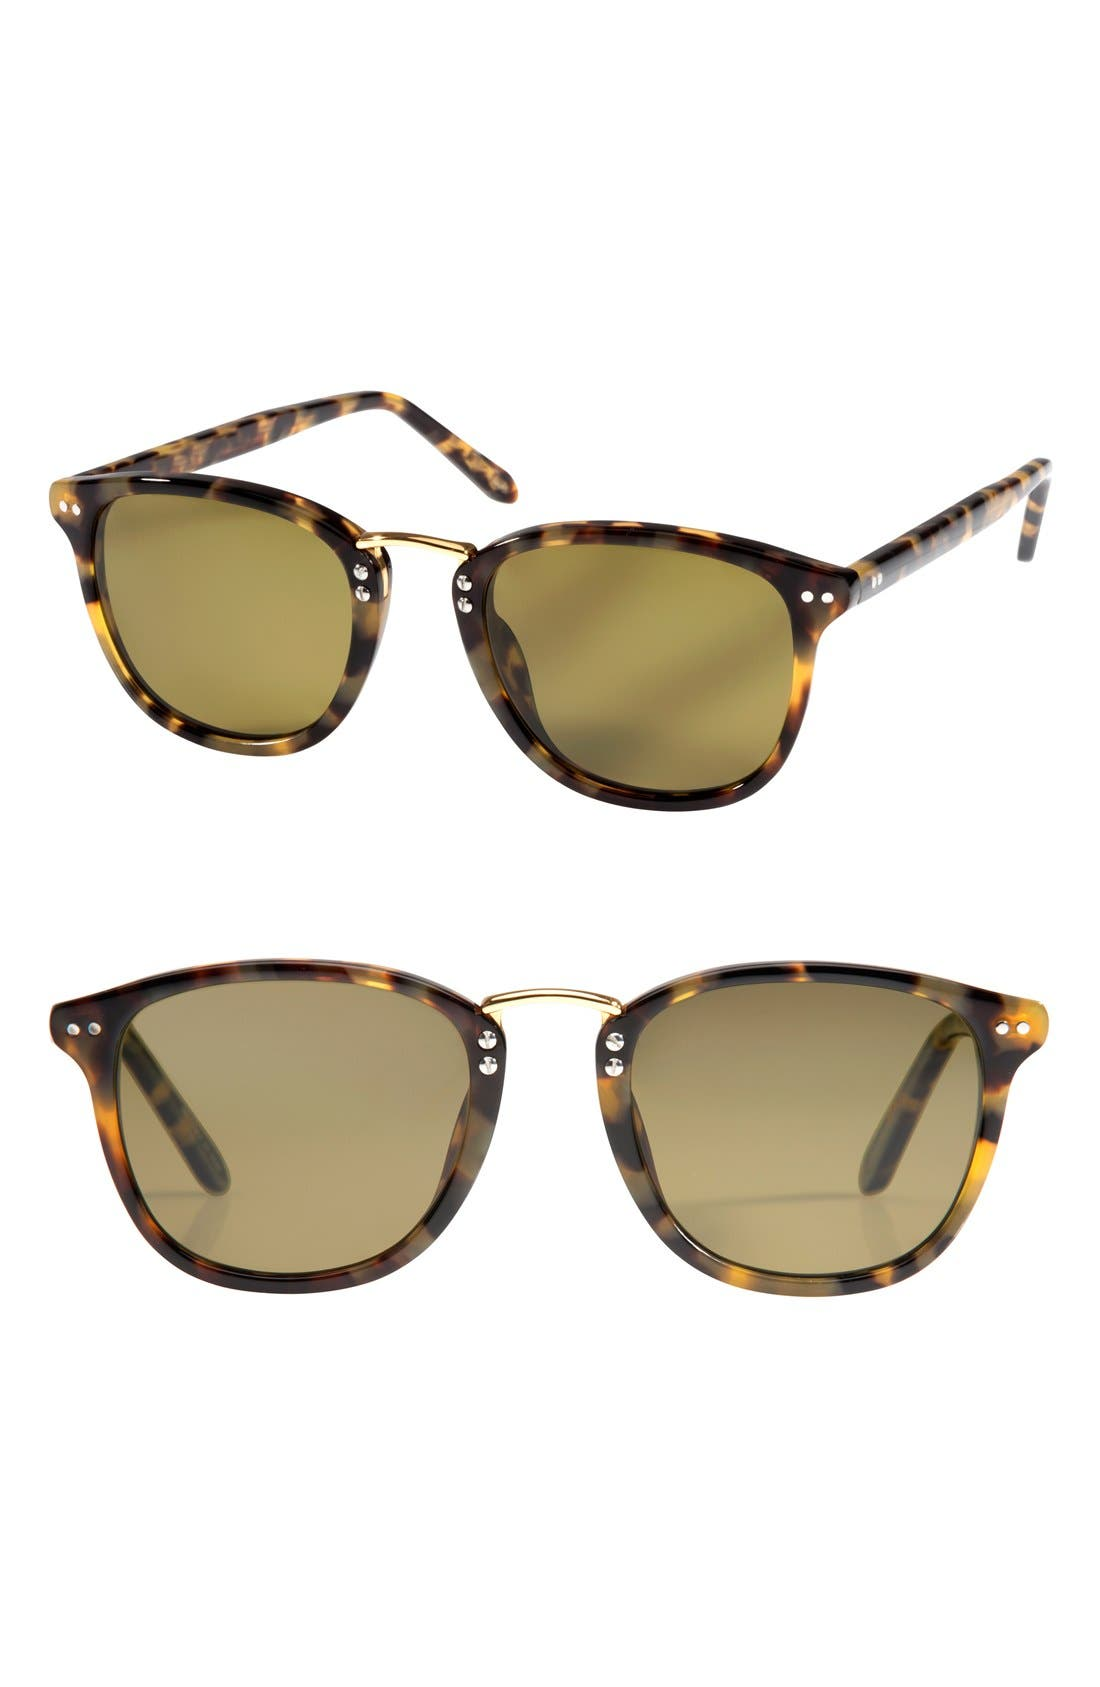 Alternate Image 1 Selected - KREWE 'Franklin' 49mm Polarized Retro Sunglasses